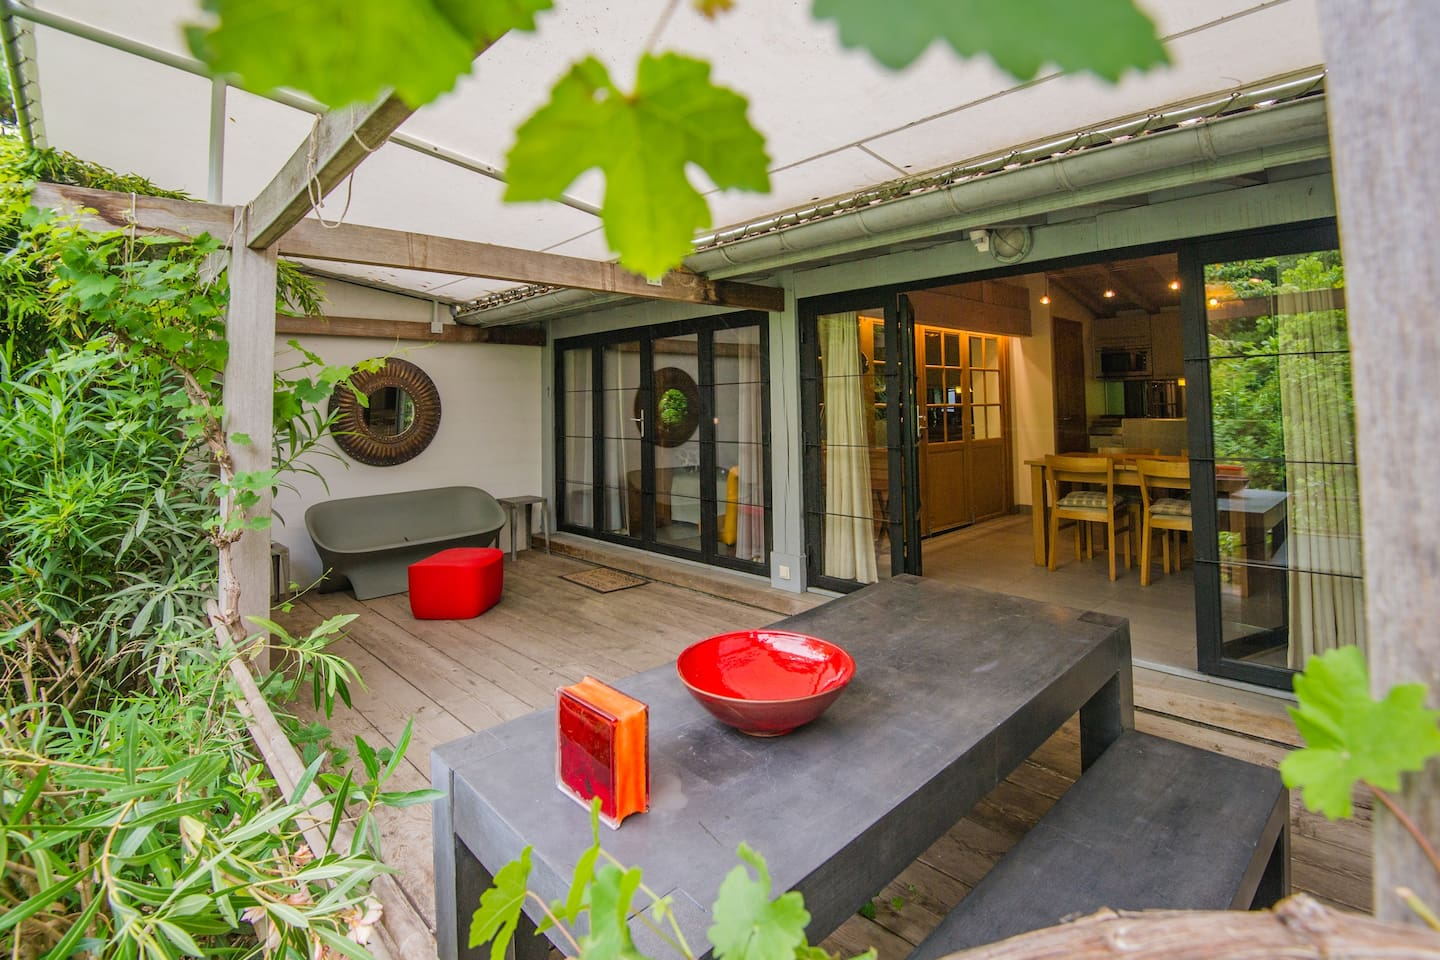 Independent house in the forest - Apartments for Rent in Biarritz ...